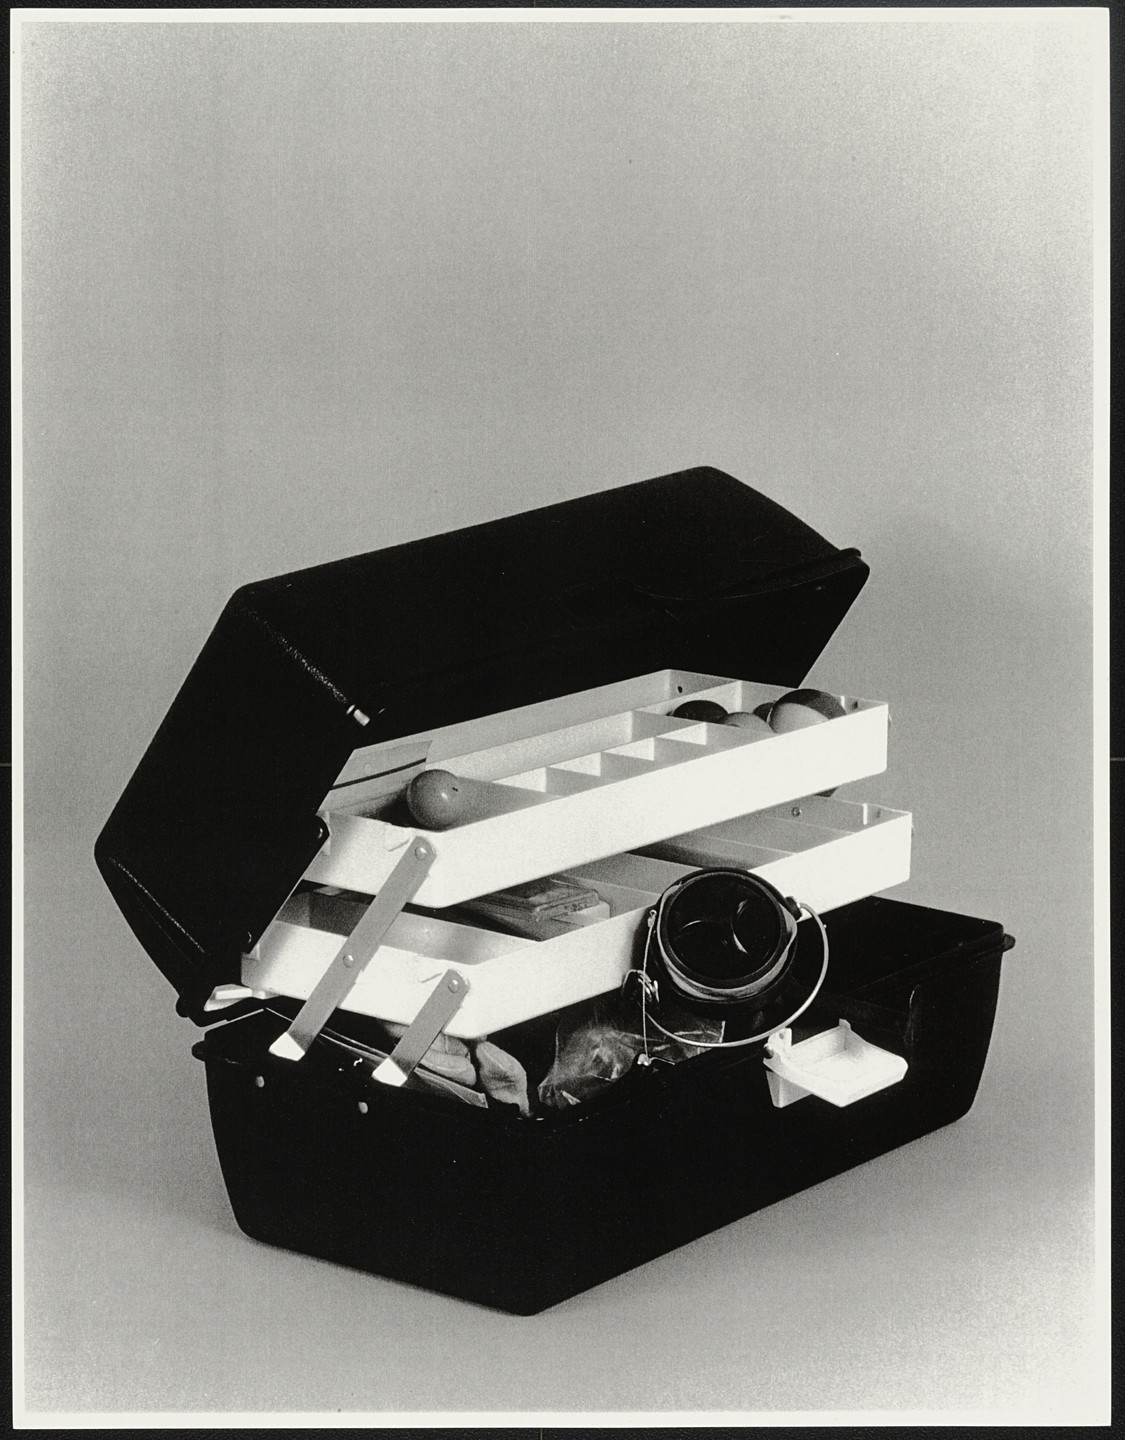 Christian Boltanski. Untitled from Favorite Objects. 1998